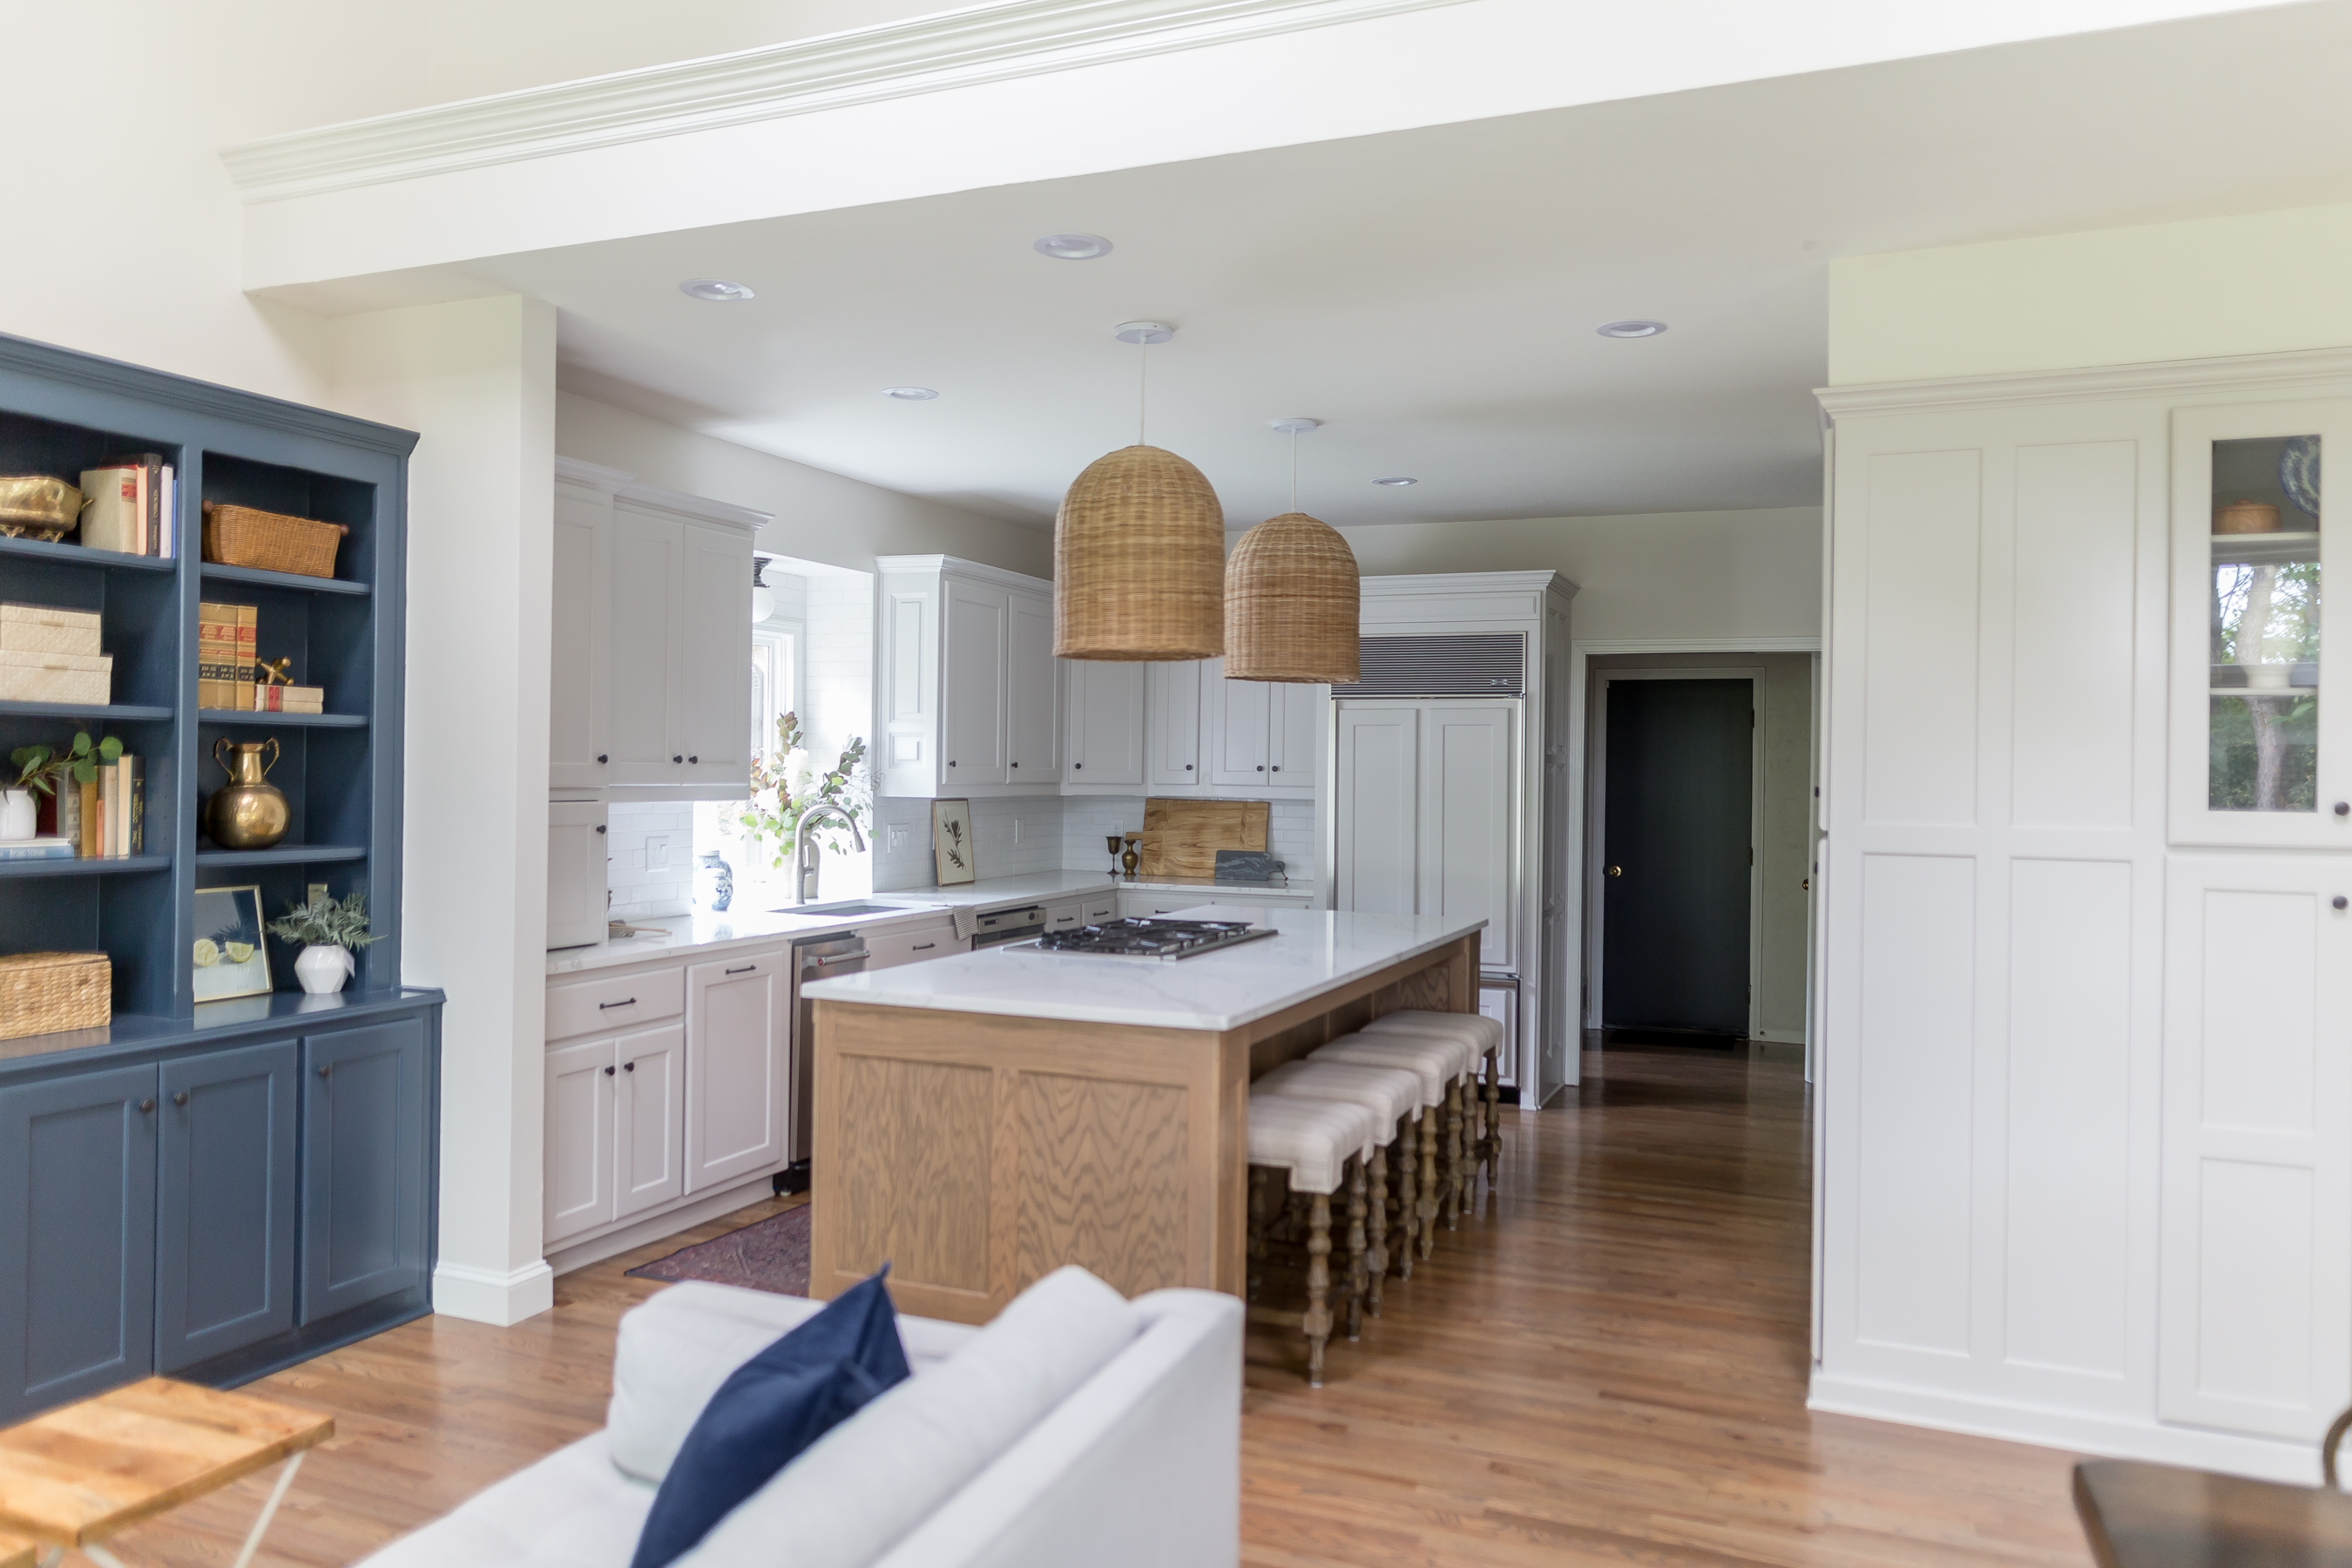 light gray cabinets with oak island, navy built ins, woven pendant lights, quartz countertops